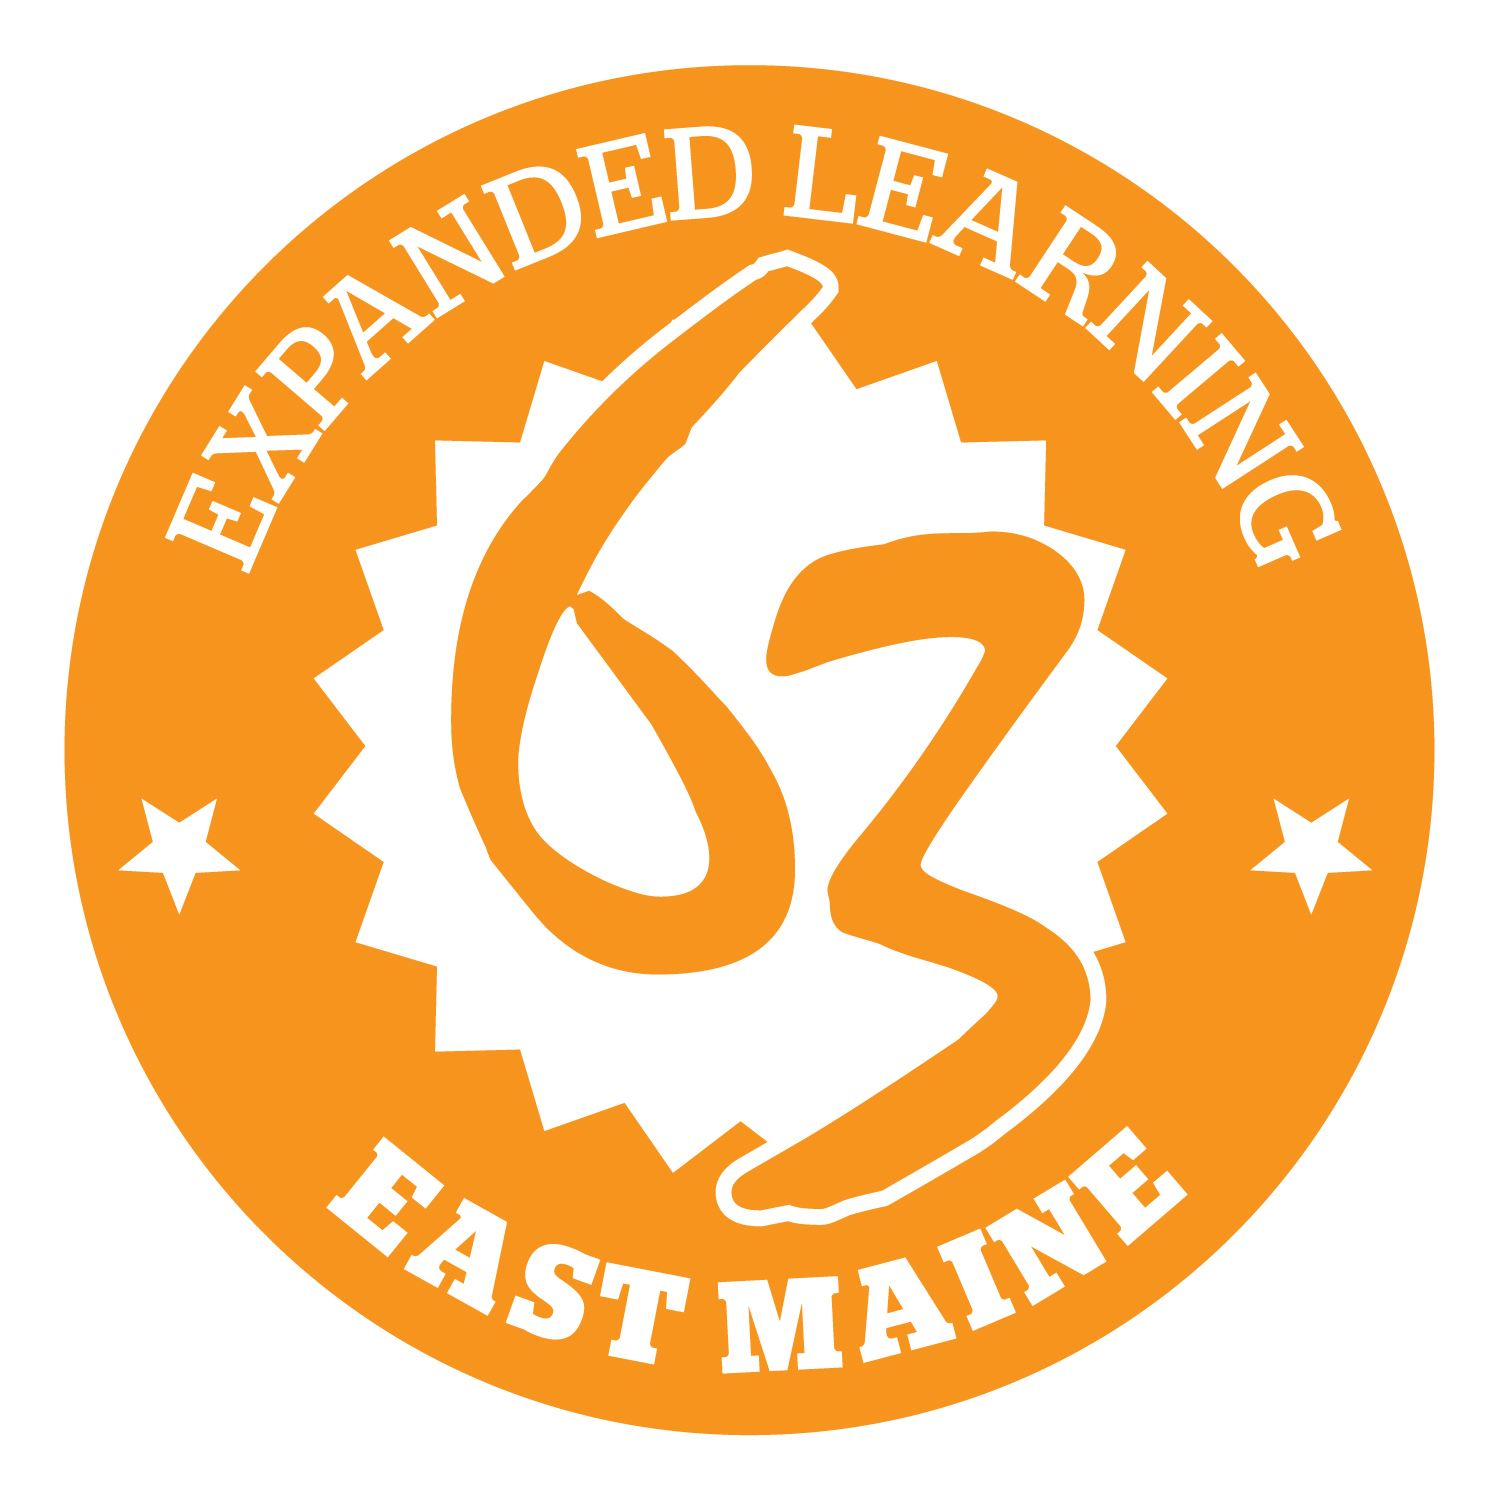 D63 Expanded Learning Logo Opens in new window